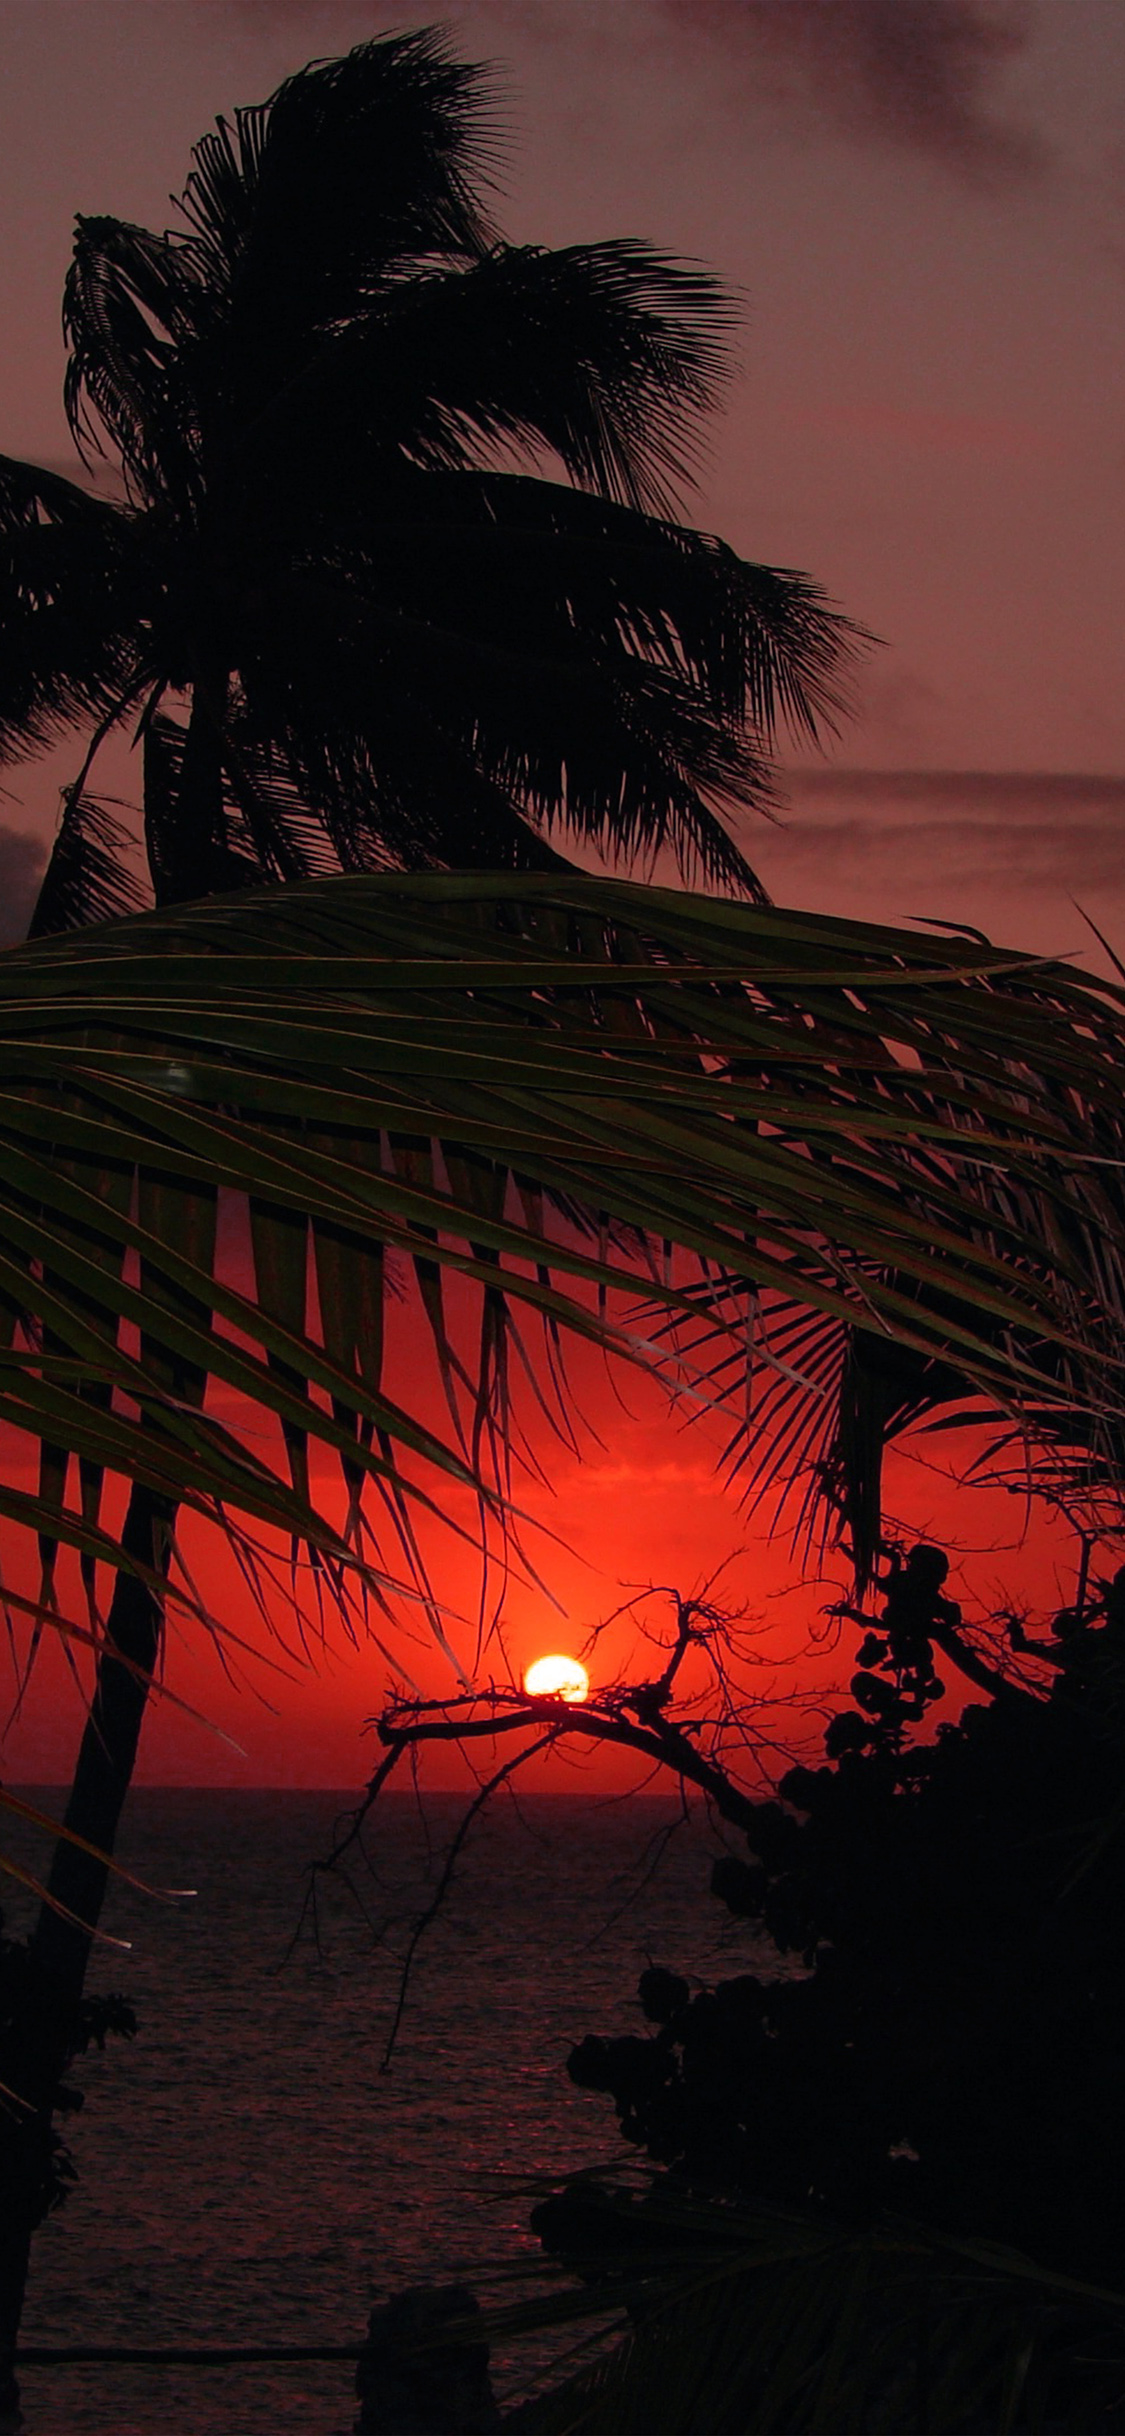 iPhonexpapers.com-Apple-iPhone-wallpaper-nk21-beach-sunset-sea-tree-nature-holiday-red